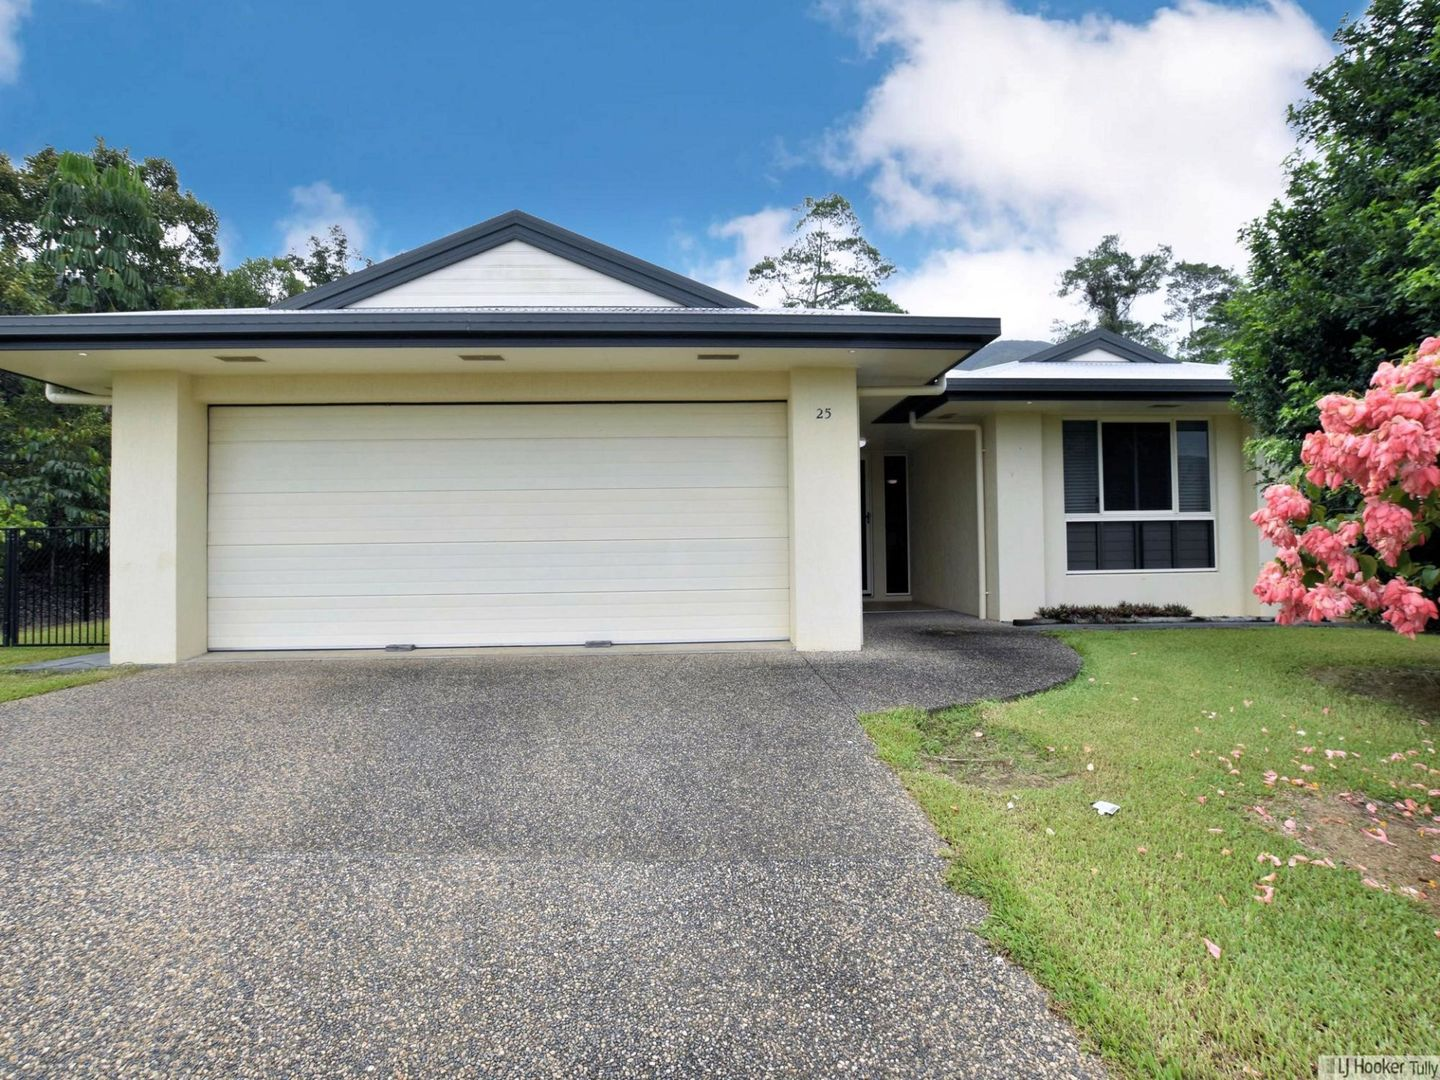 25 Pease Street, Tully QLD 4854, Image 0